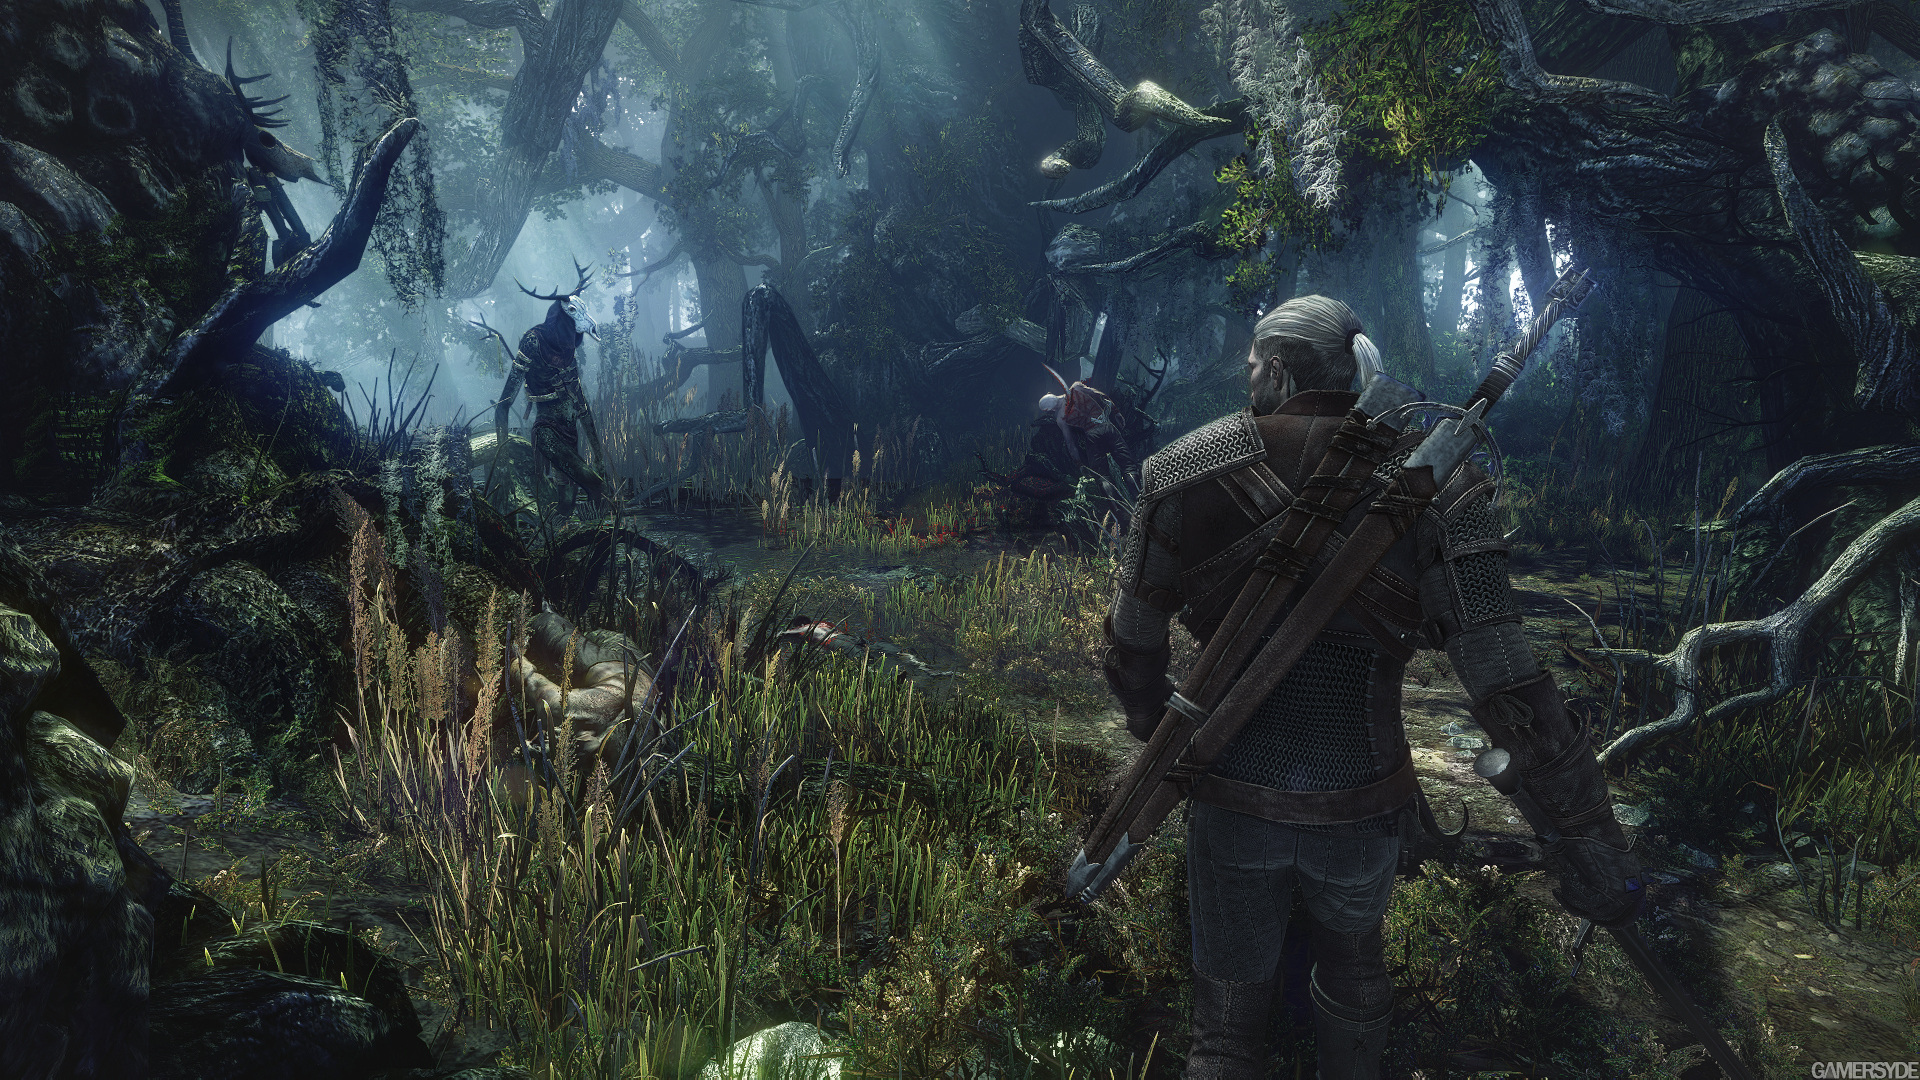 Witcher 3 Image_the_witcher_3_wild_hunt-22370-2651_0002